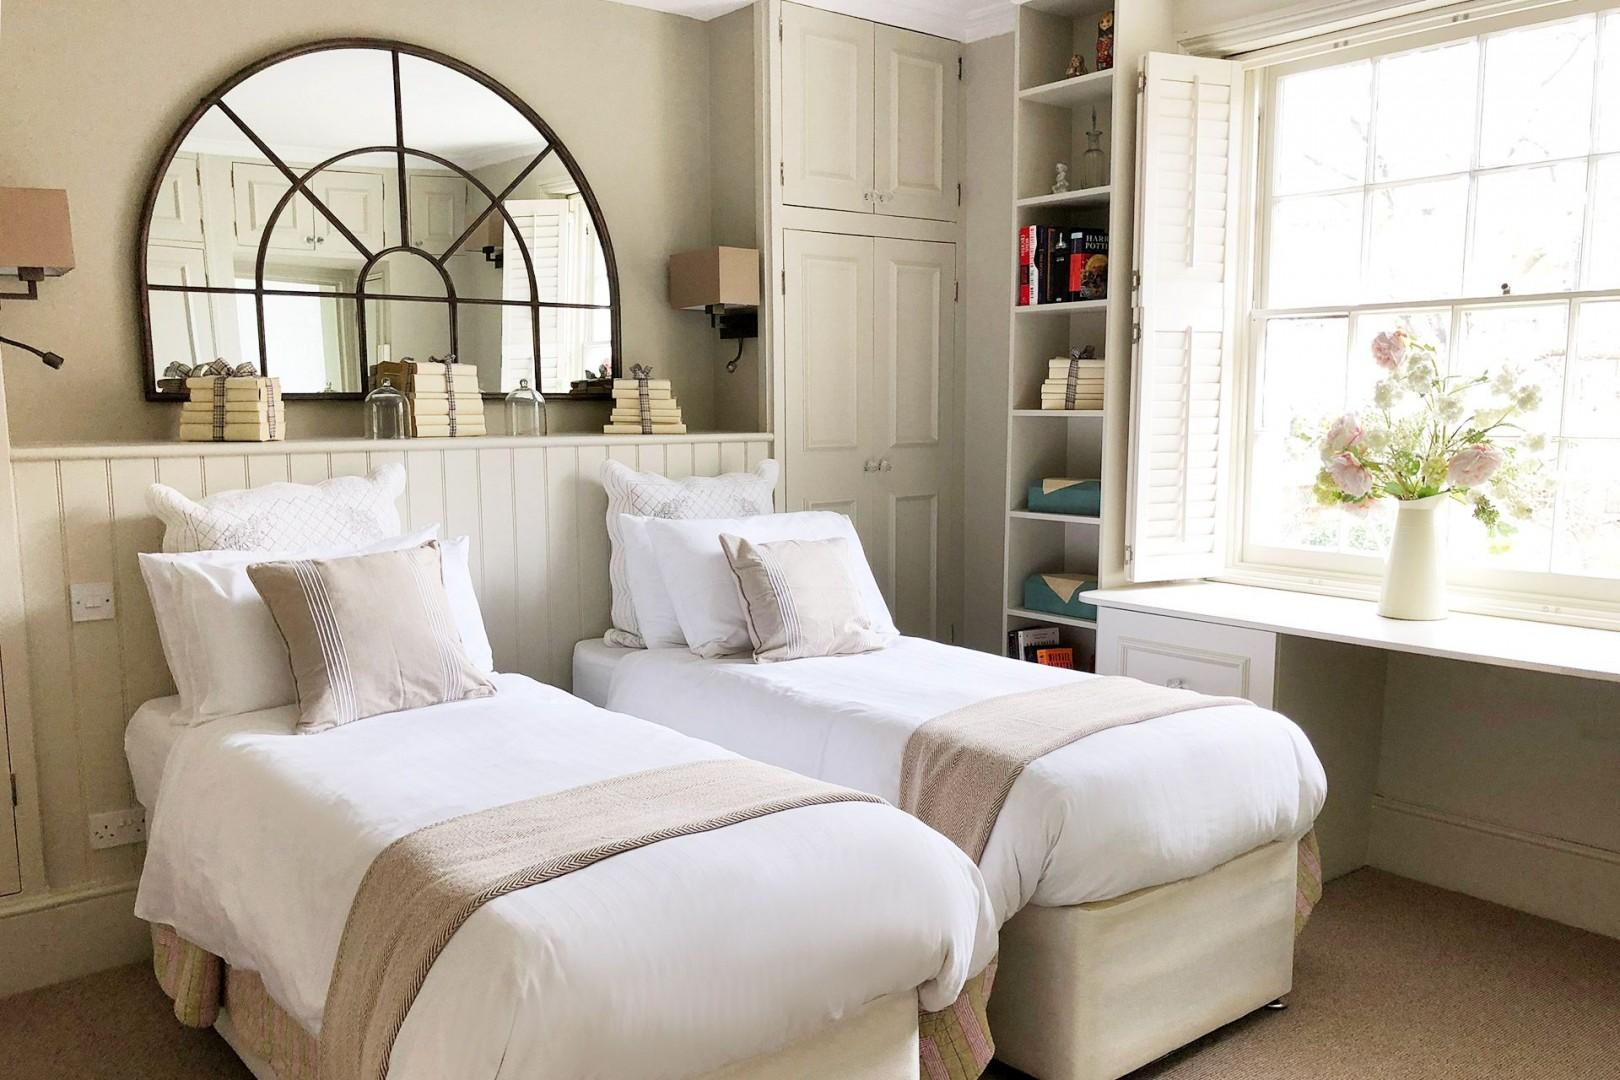 Second bedroom with two comfortable beds that can be zipped together to form one bed